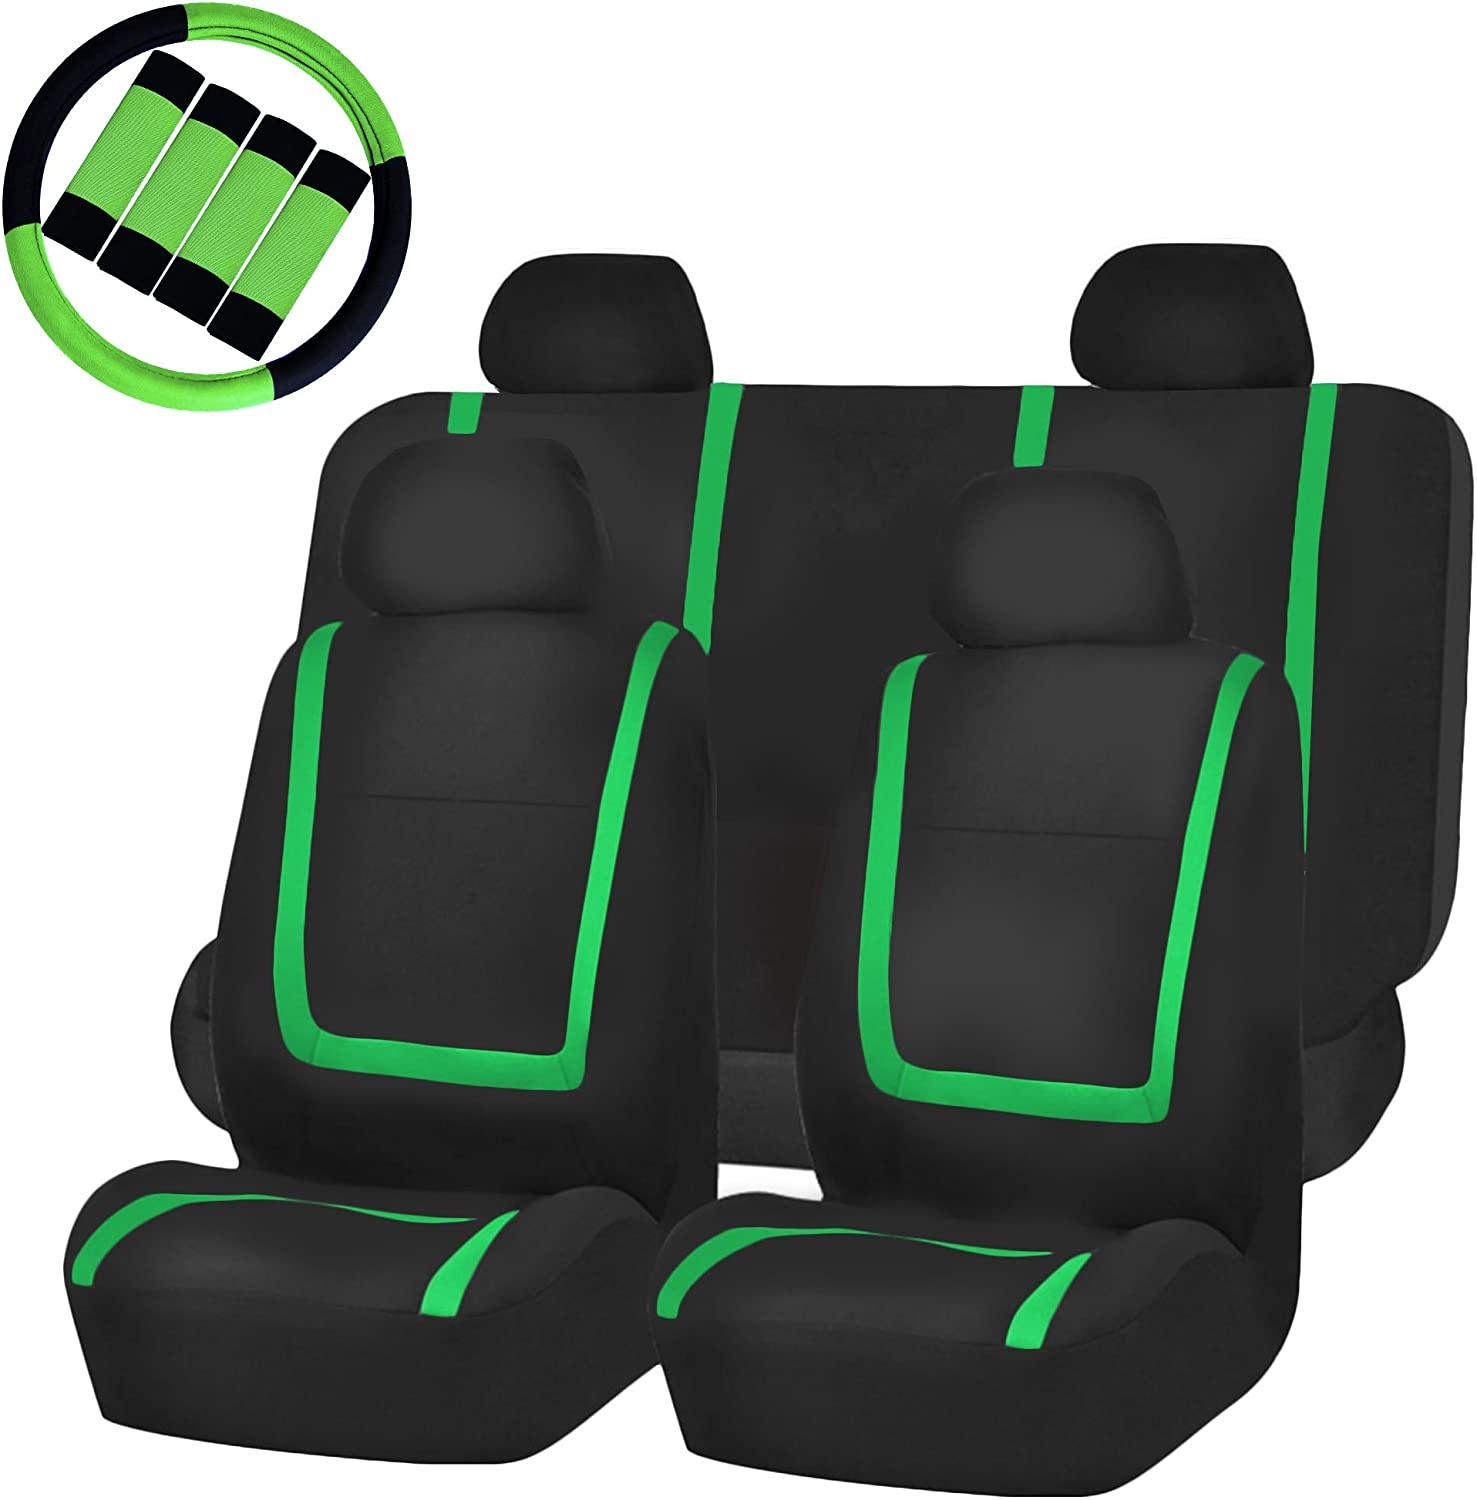 FH Group FB032114 Unique Flat Cloth Full Set Car Seat Covers, Green/Black w, 1 Steering Wheel Cover & 4 seat Belt Pads- Fit Most Car, Truck, SUV, or Van